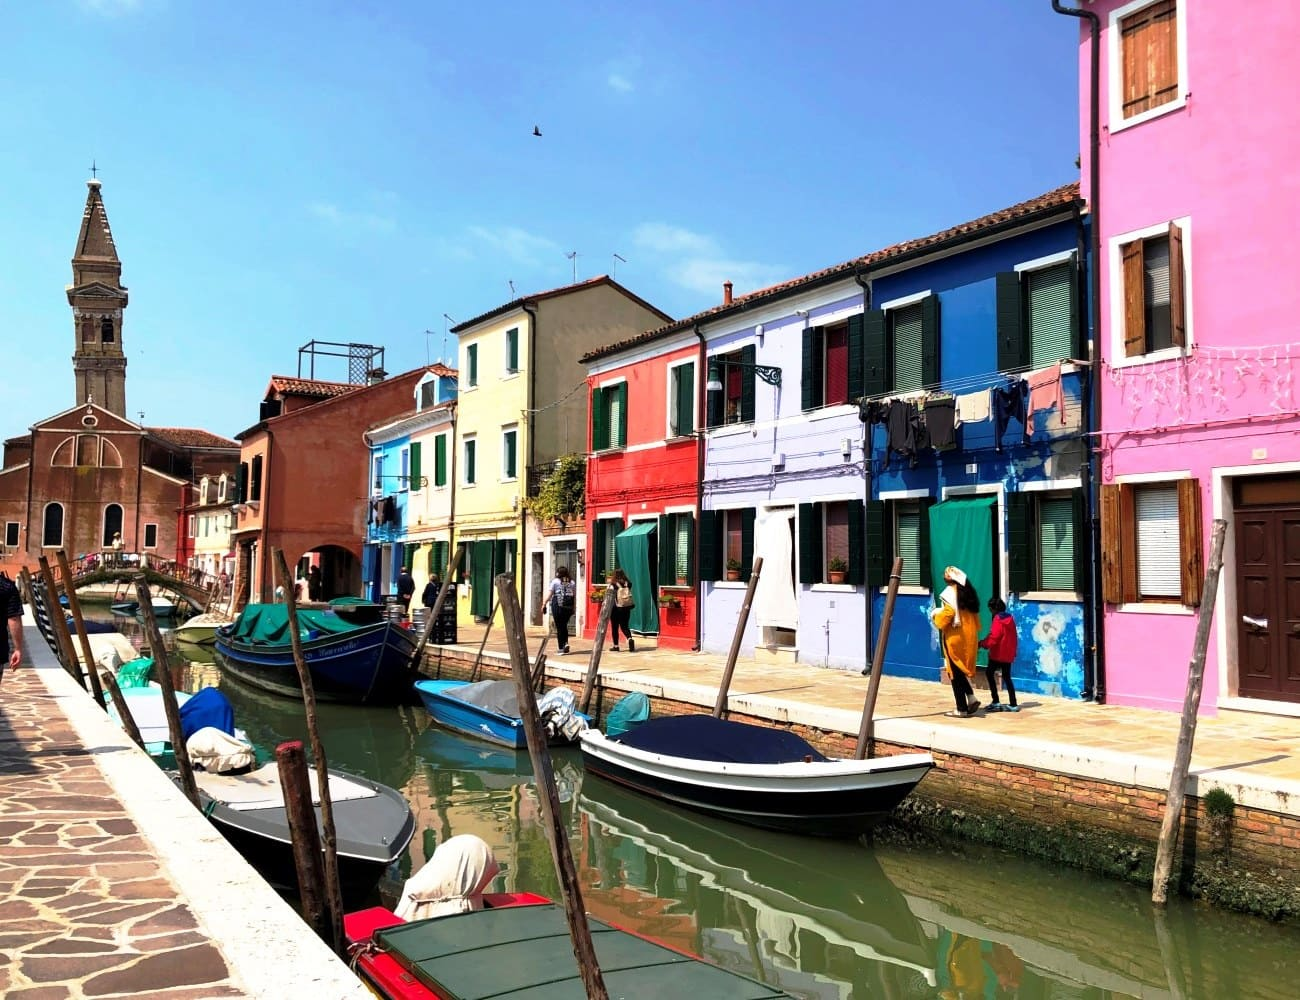 Murano To Burano.Half Day Tour To Murano Burano And Torcello Islands From St Mark S Area